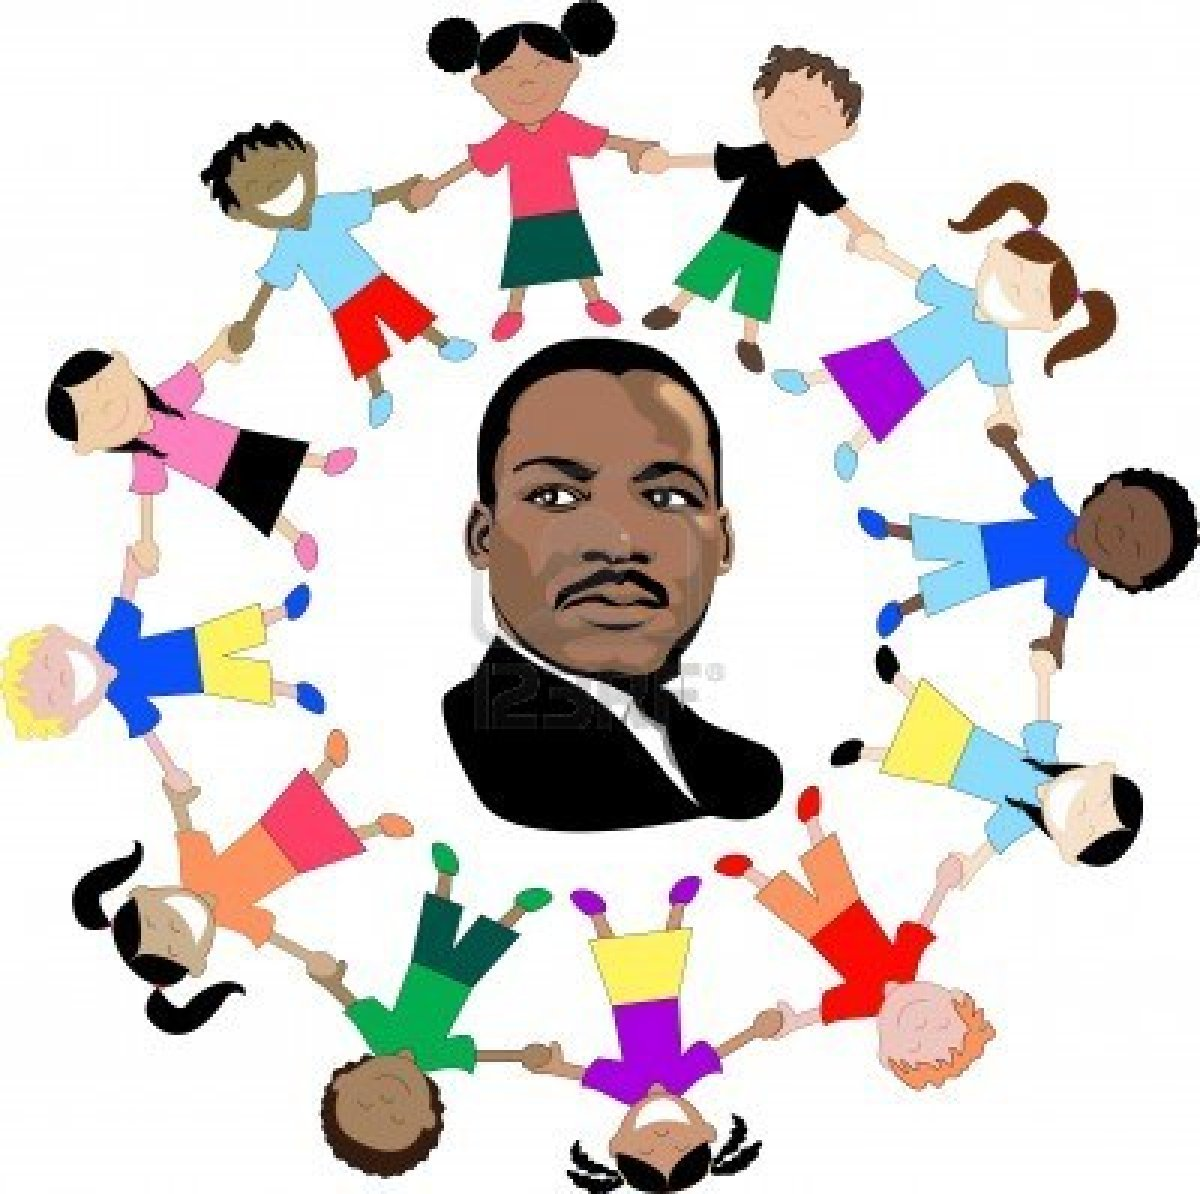 1200x1194 Rev. Dr. Martin Luther King Jr. Day Youth Dreamers